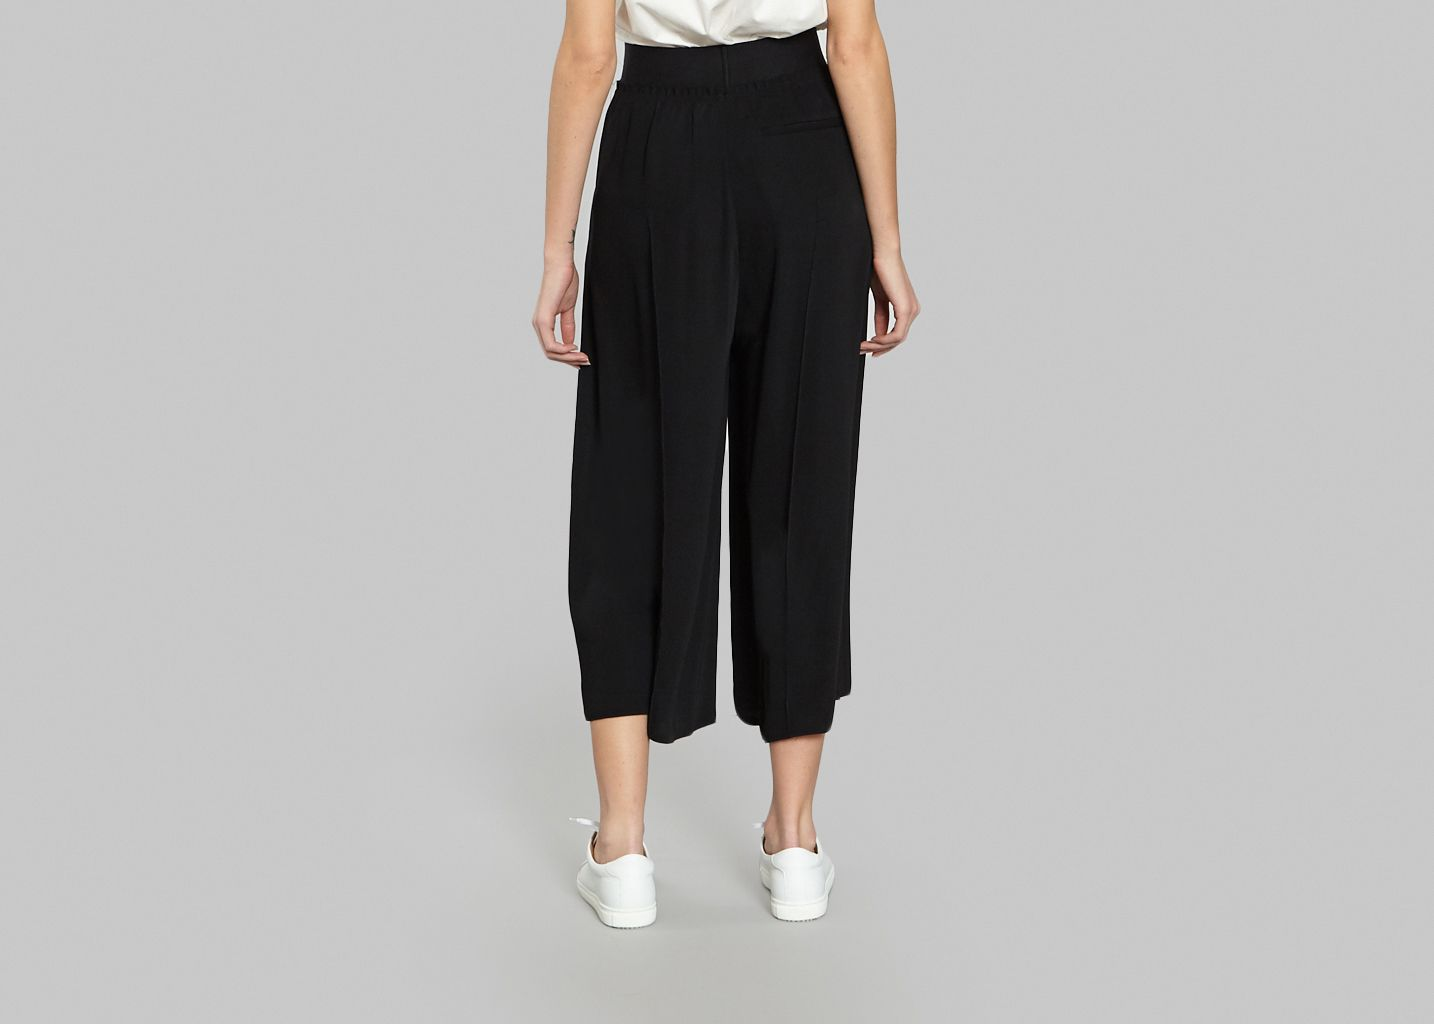 Pantalon Jupe Culotte - MM6